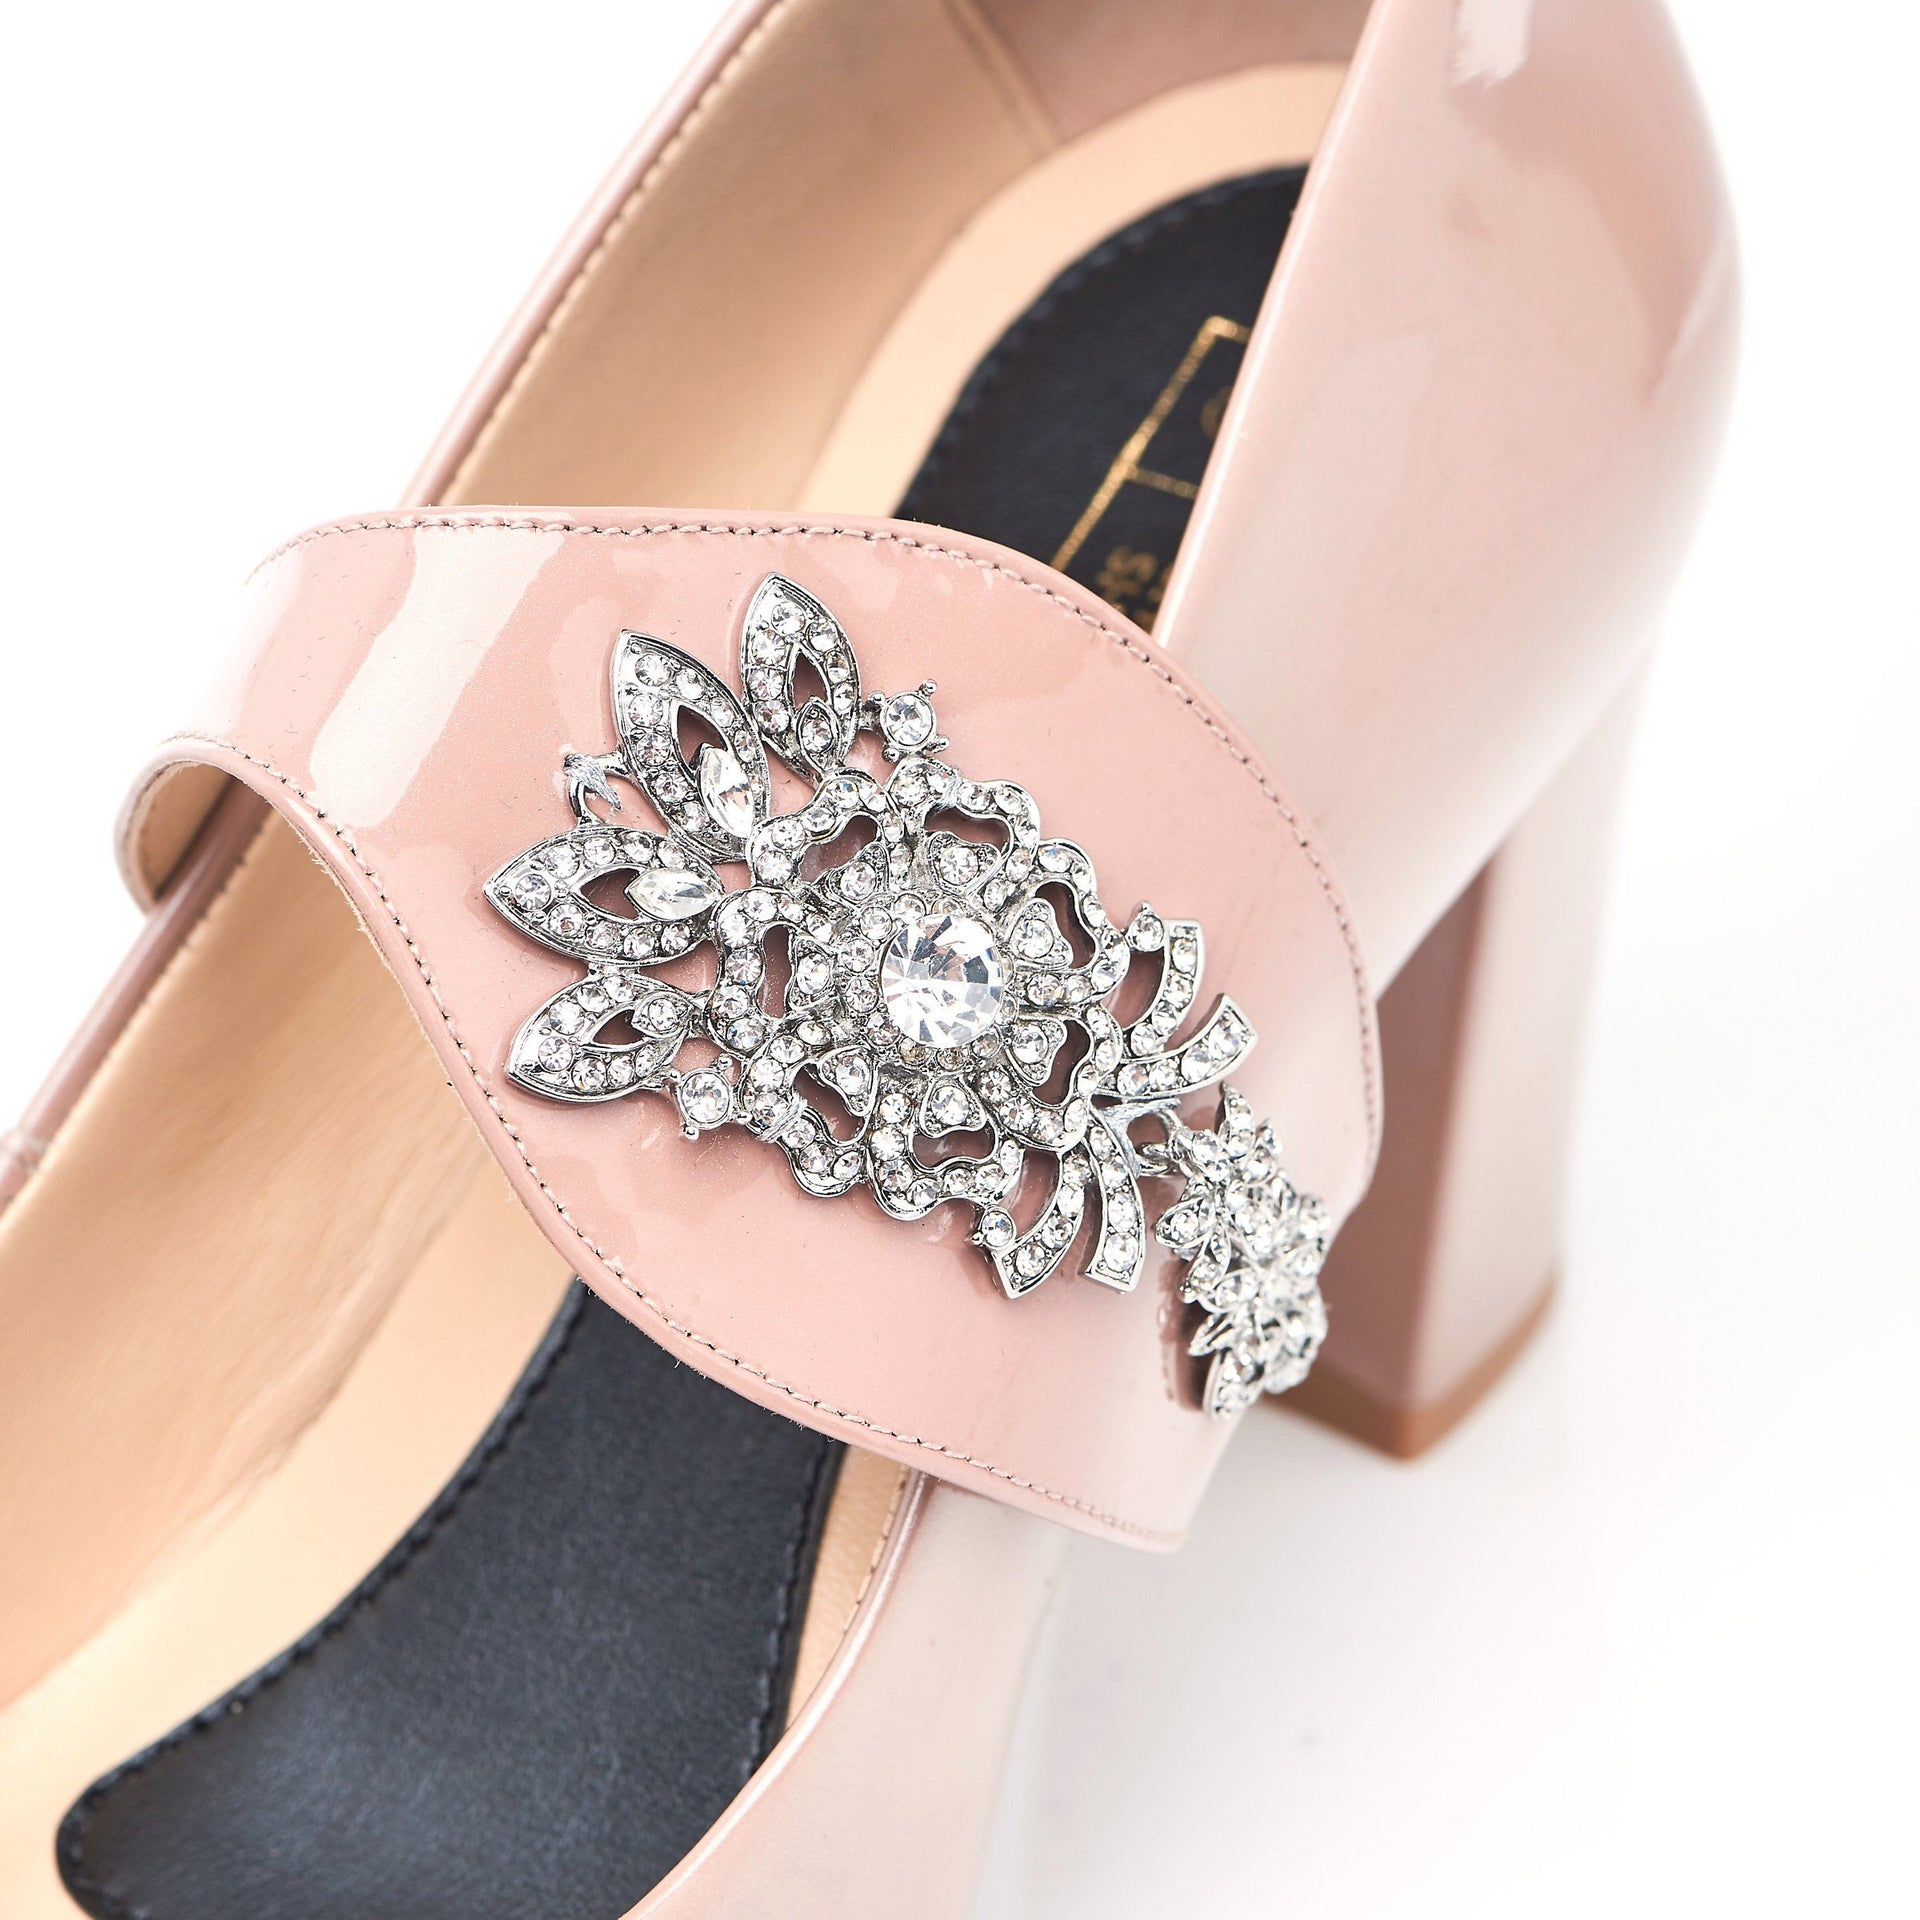 The Moon is Mine in Silver Gems - Block Heels - Blush Leather - Shoes by Shaherazad